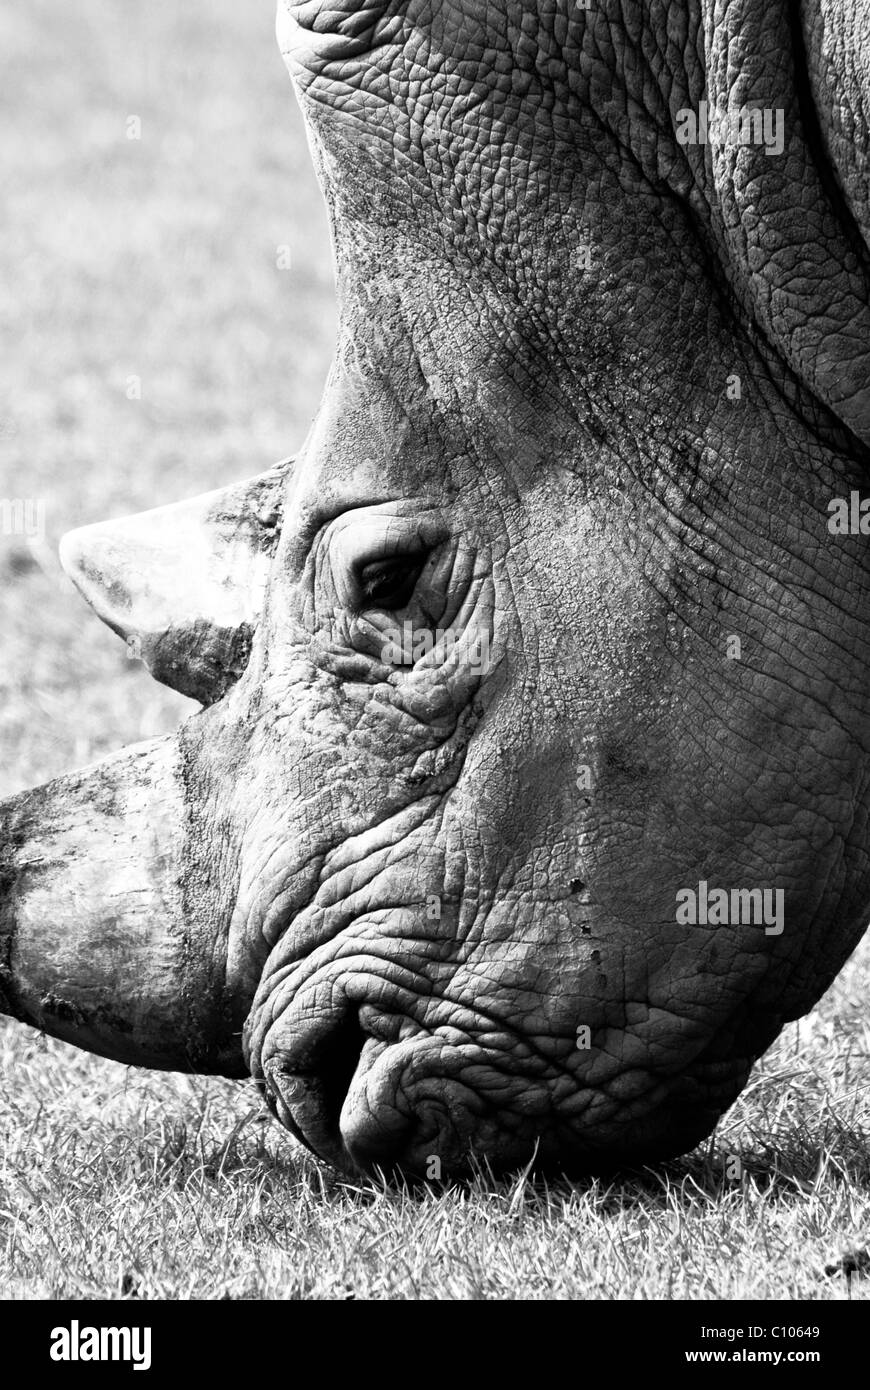 An photo of a rhinoceros eating grass (close up head view) - Stock Image